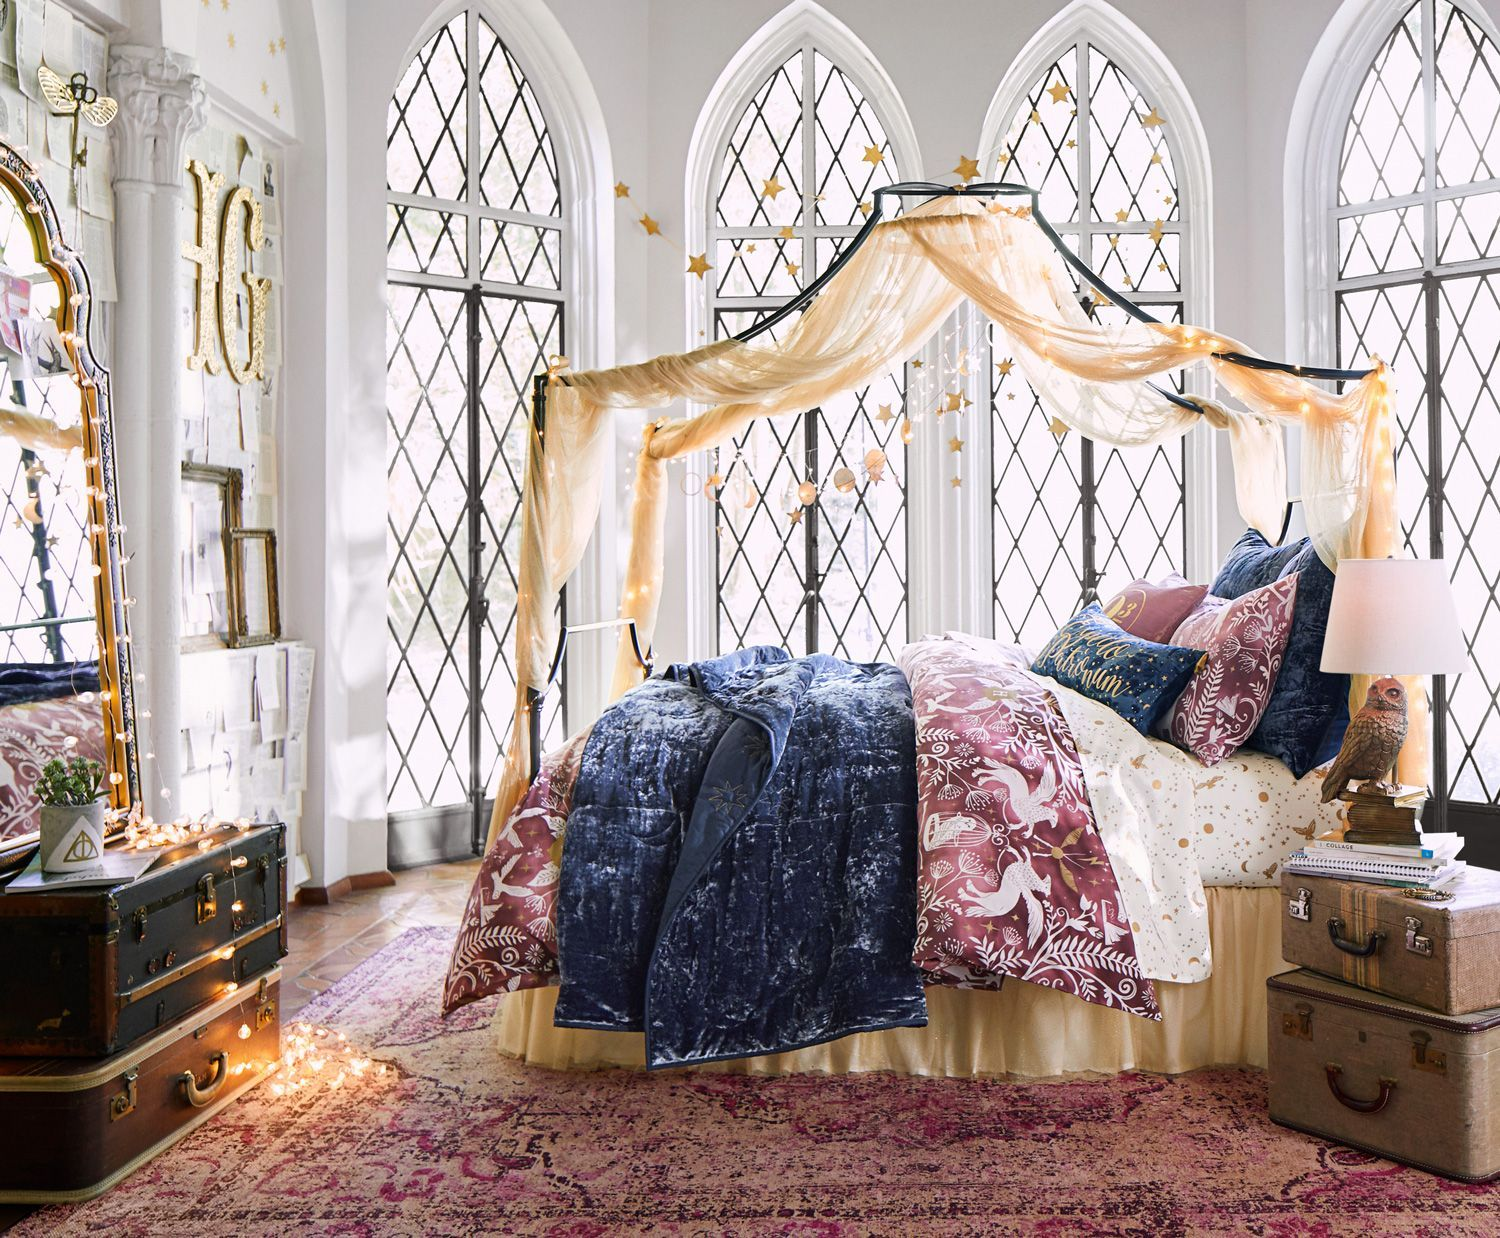 This Brand Just Launched A Harry Potter Home Collection We Want